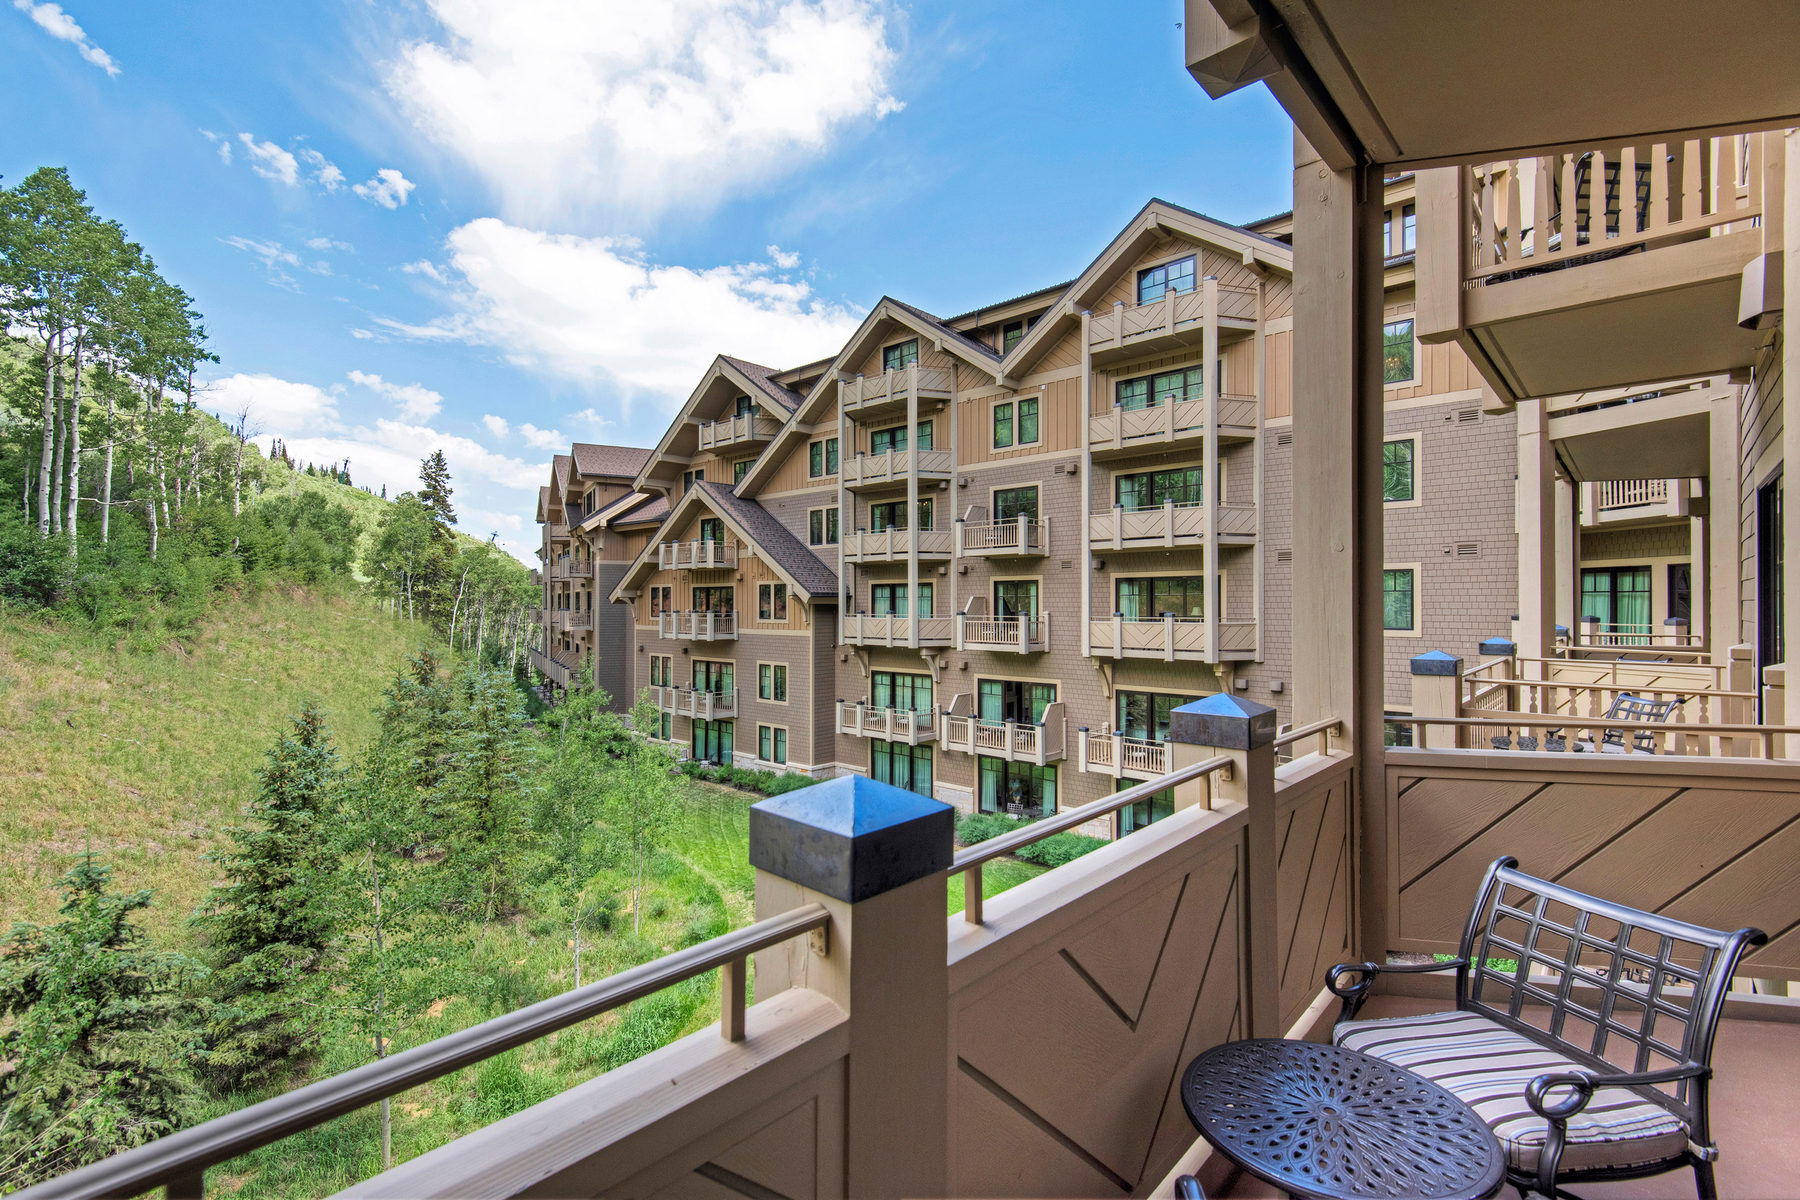 Condominium for Sale at Montage Residences at Deer Valley 9100 Marsac Ave 831/833 Park City, Utah, 84060 United States